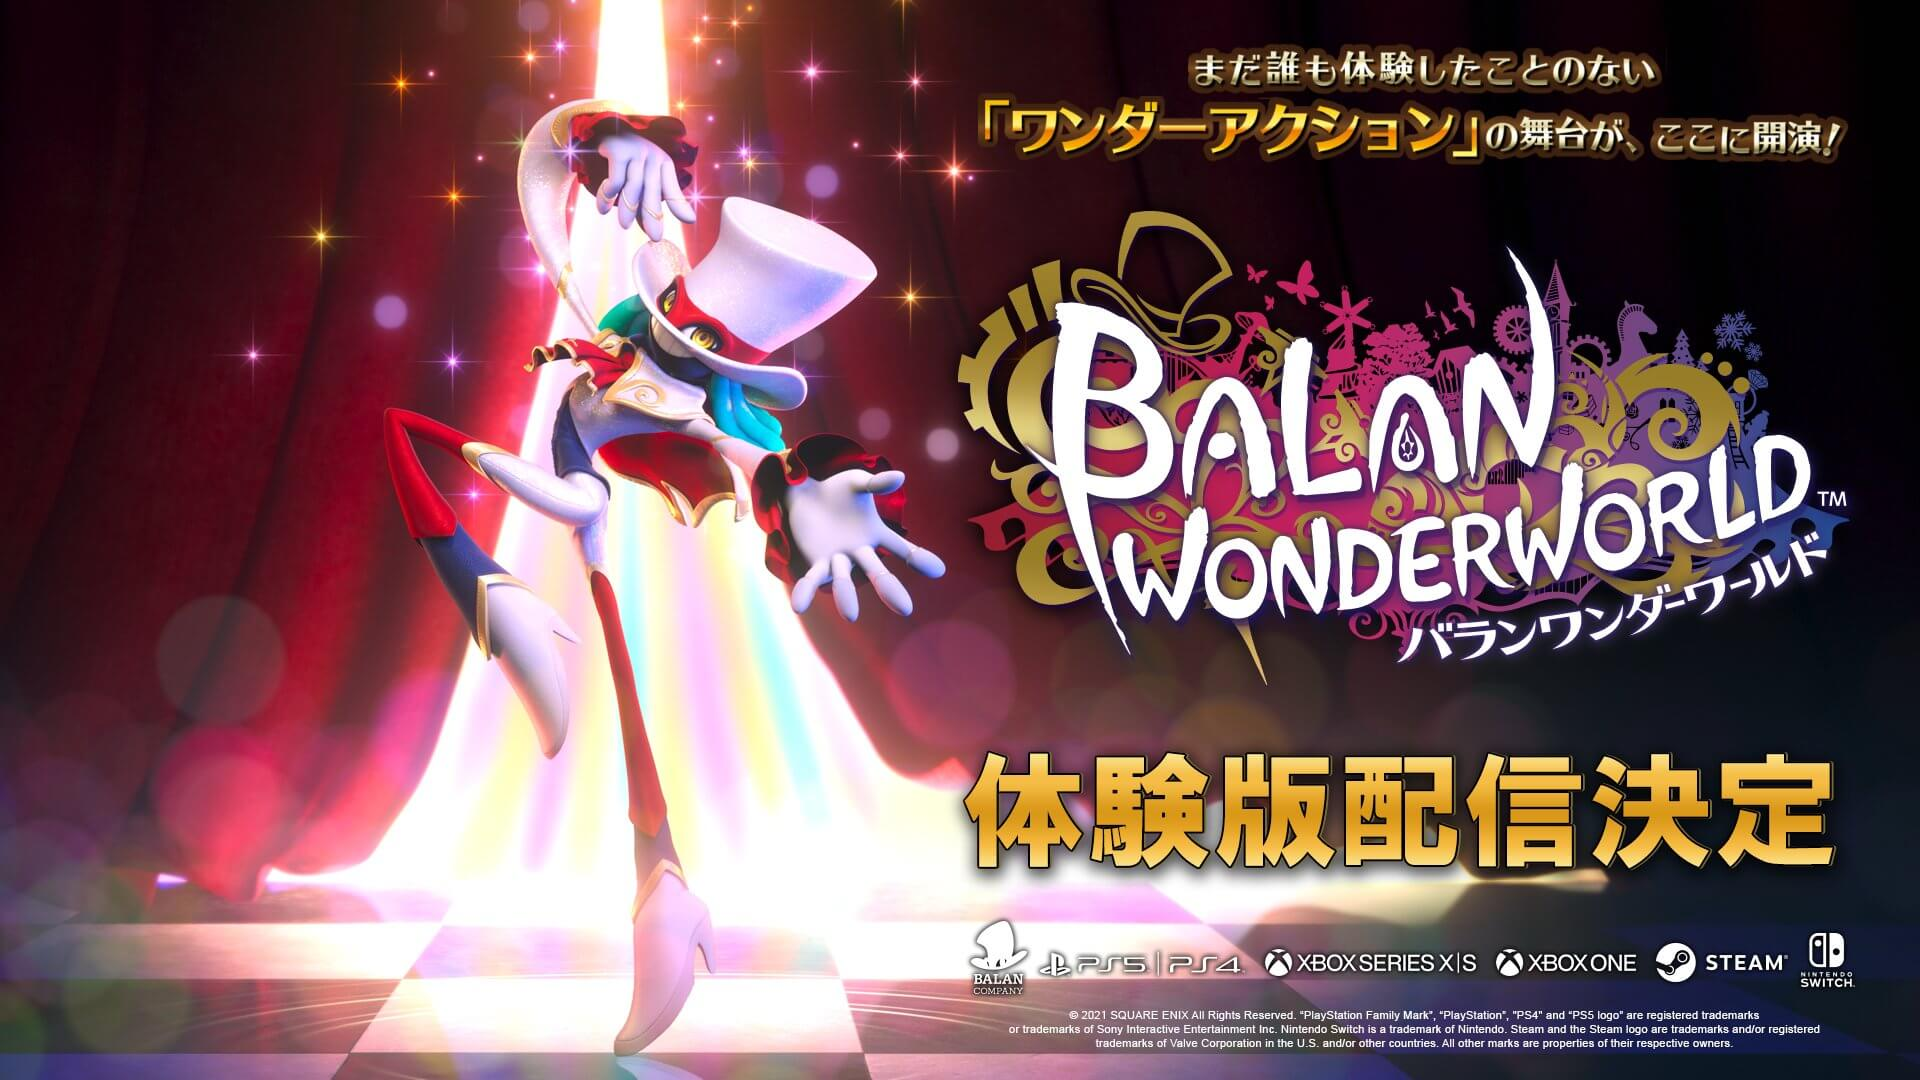 Demo de Balan Wonderworld estará disponible desde el 28 de enero